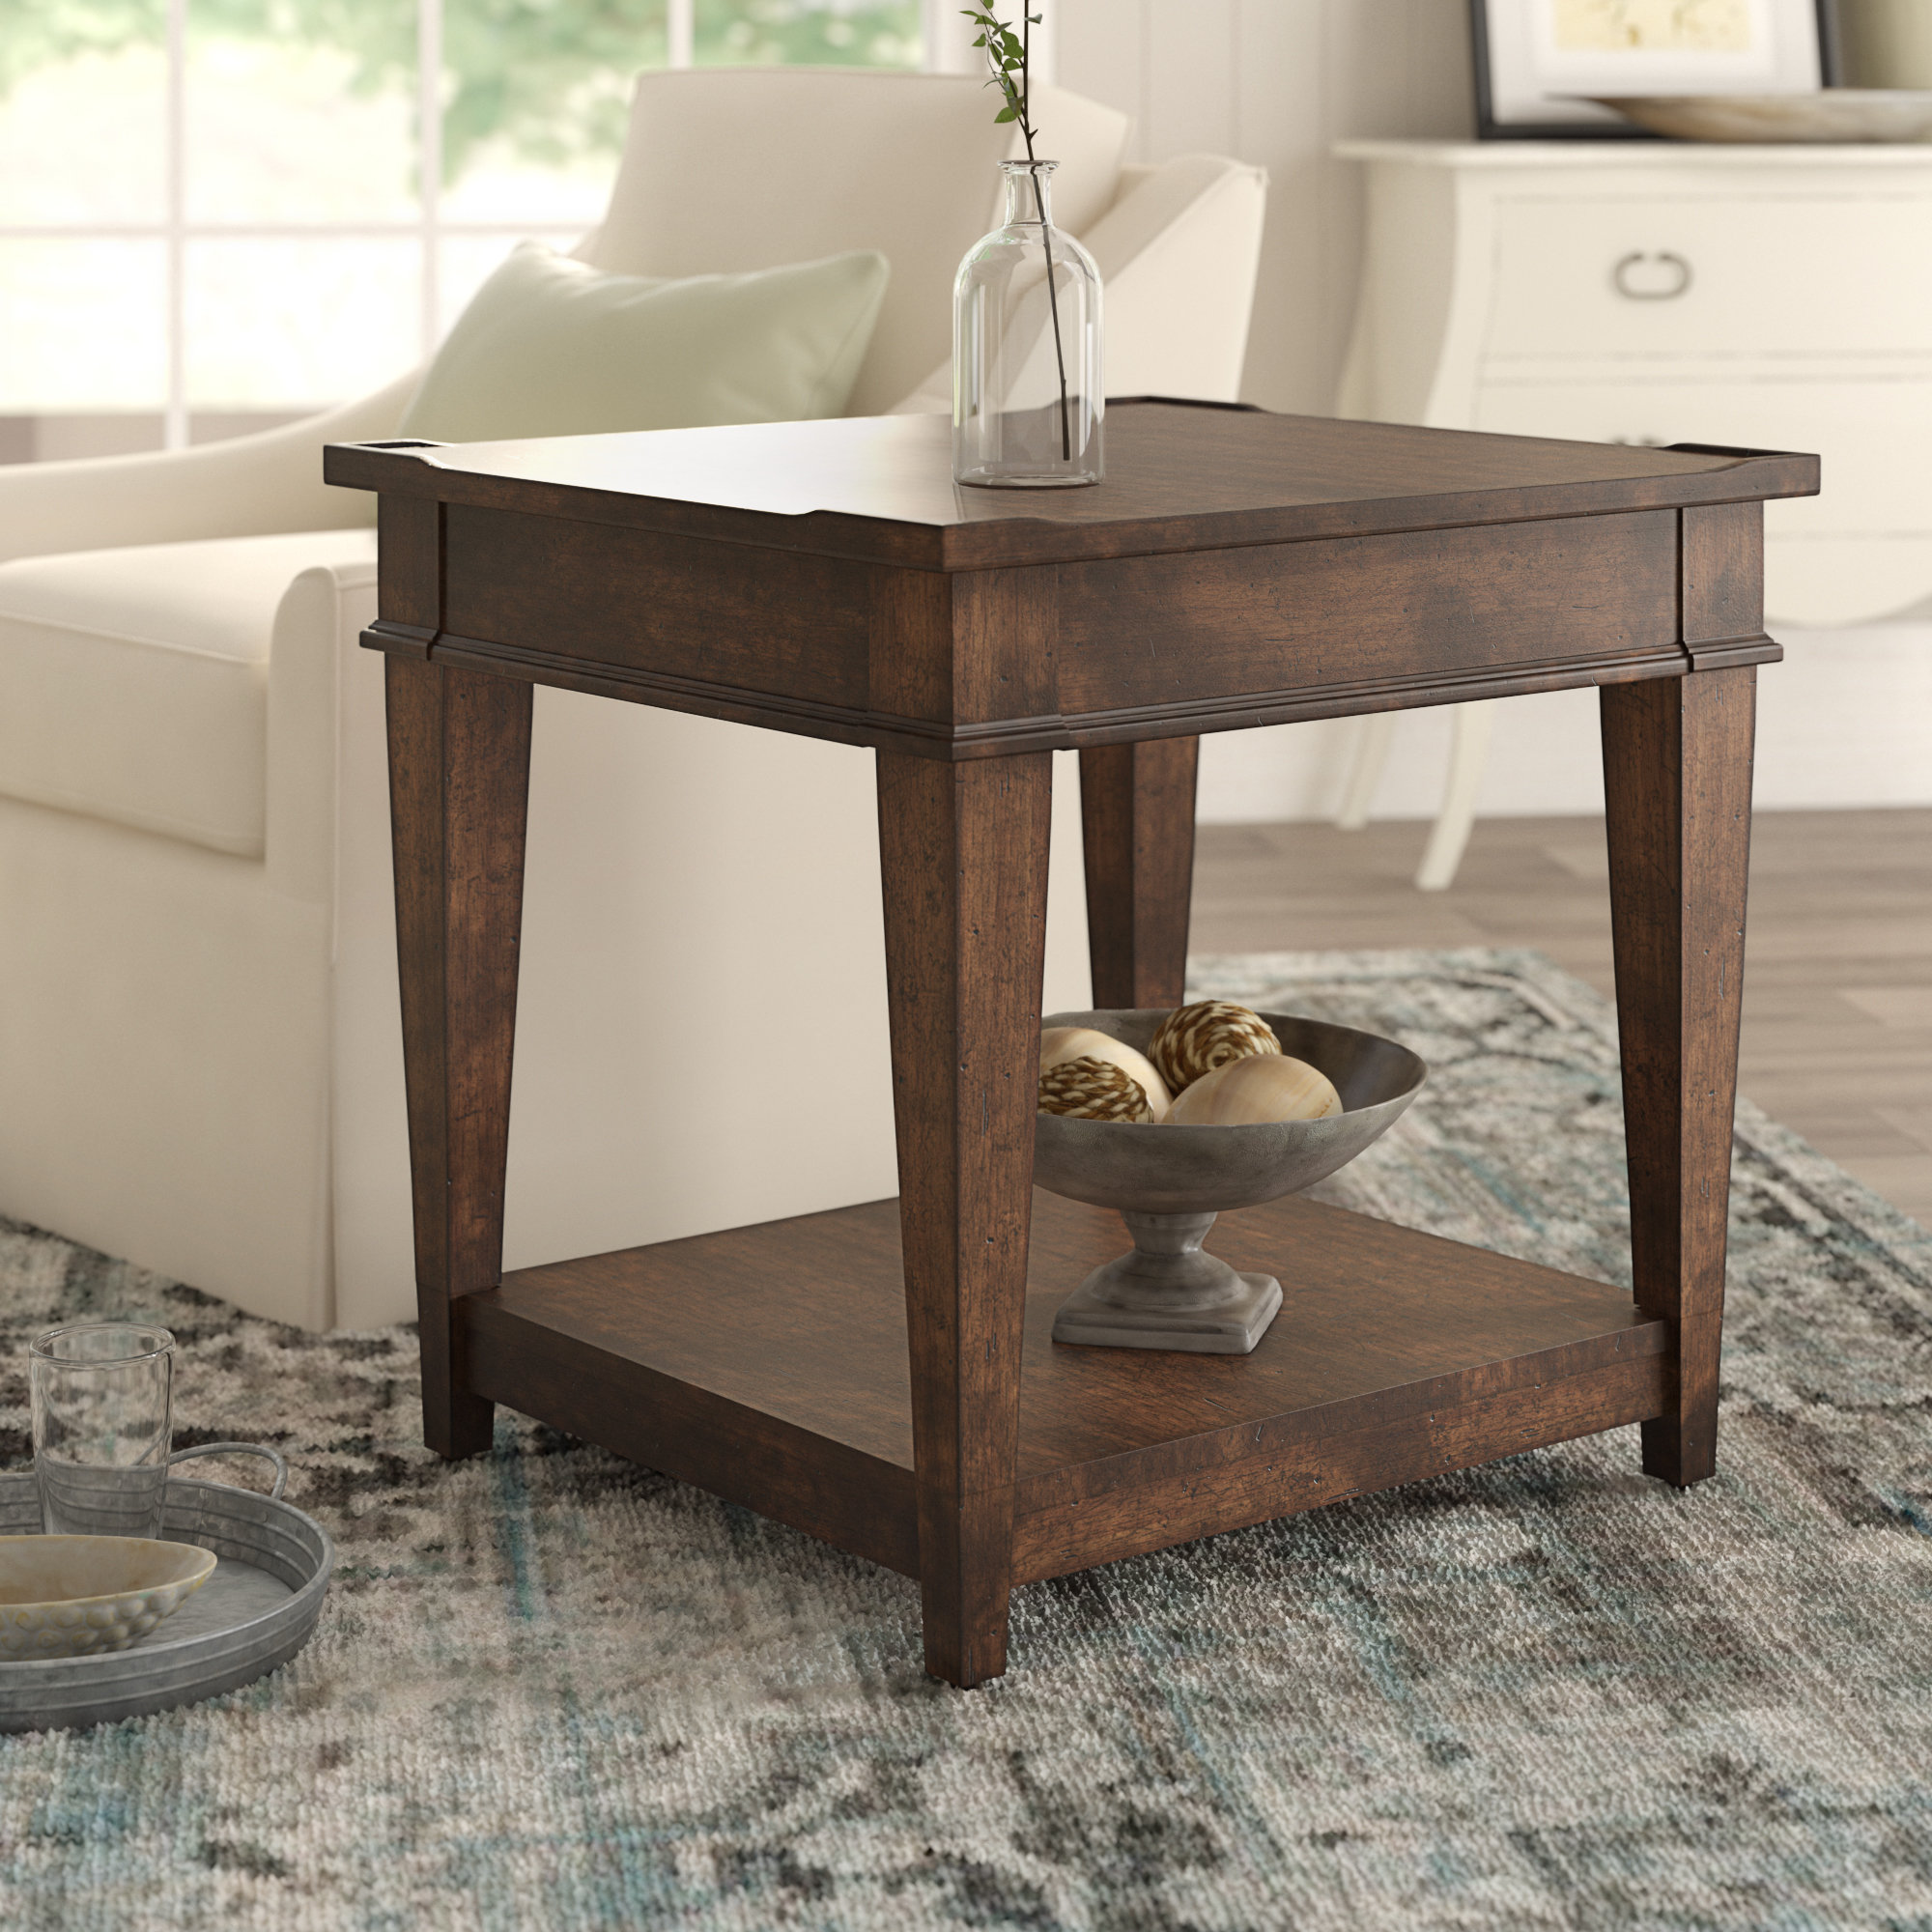 birch lane heritage wheaton side table reviews room essentials storage accent stacking coffee tables round concrete contemporary decor tablecloth square pier papasan chair small